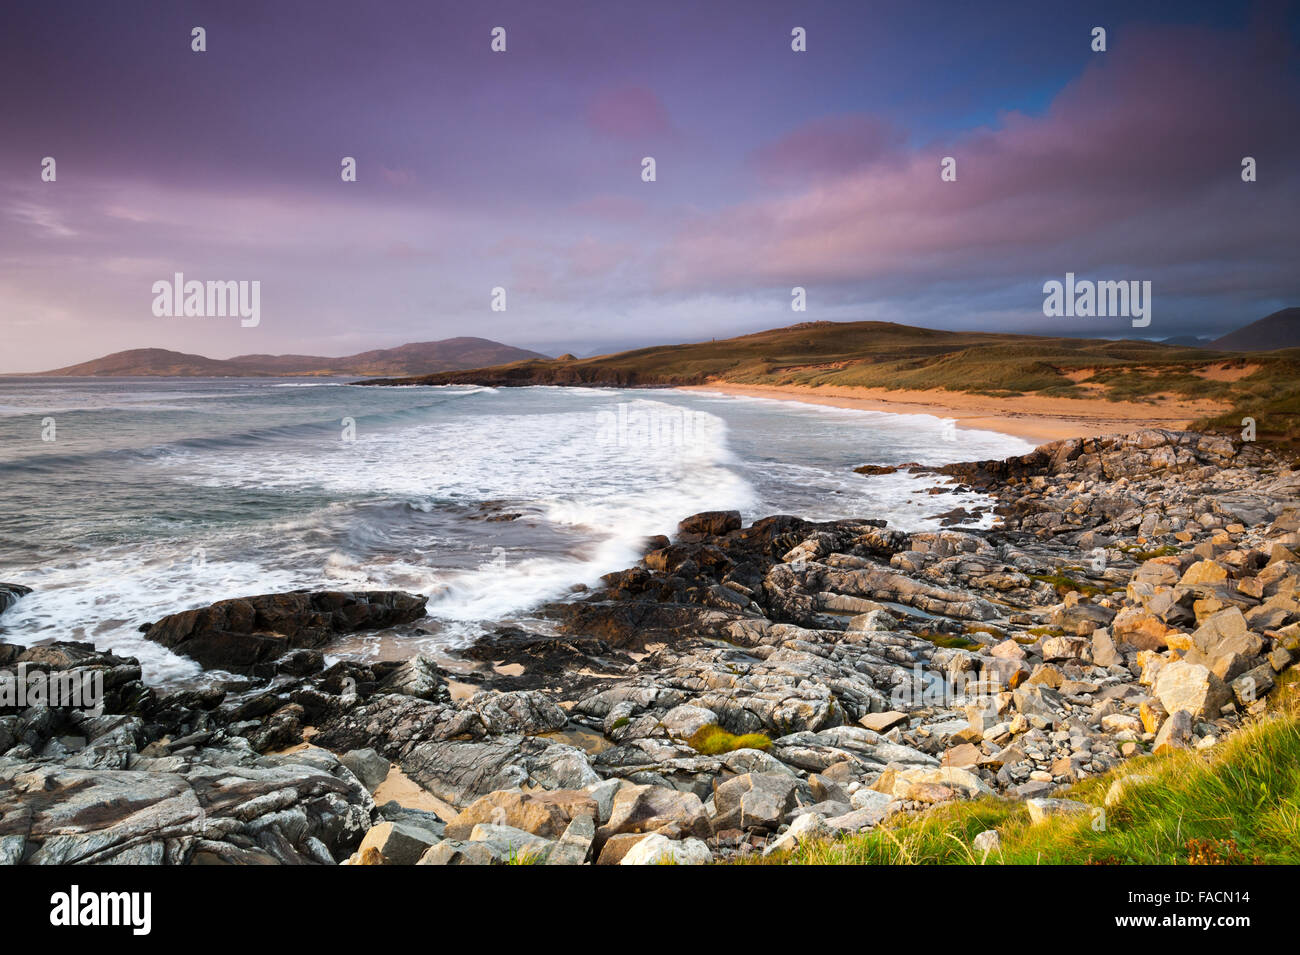 Early evening in the West coast of Scotland - Stock Image